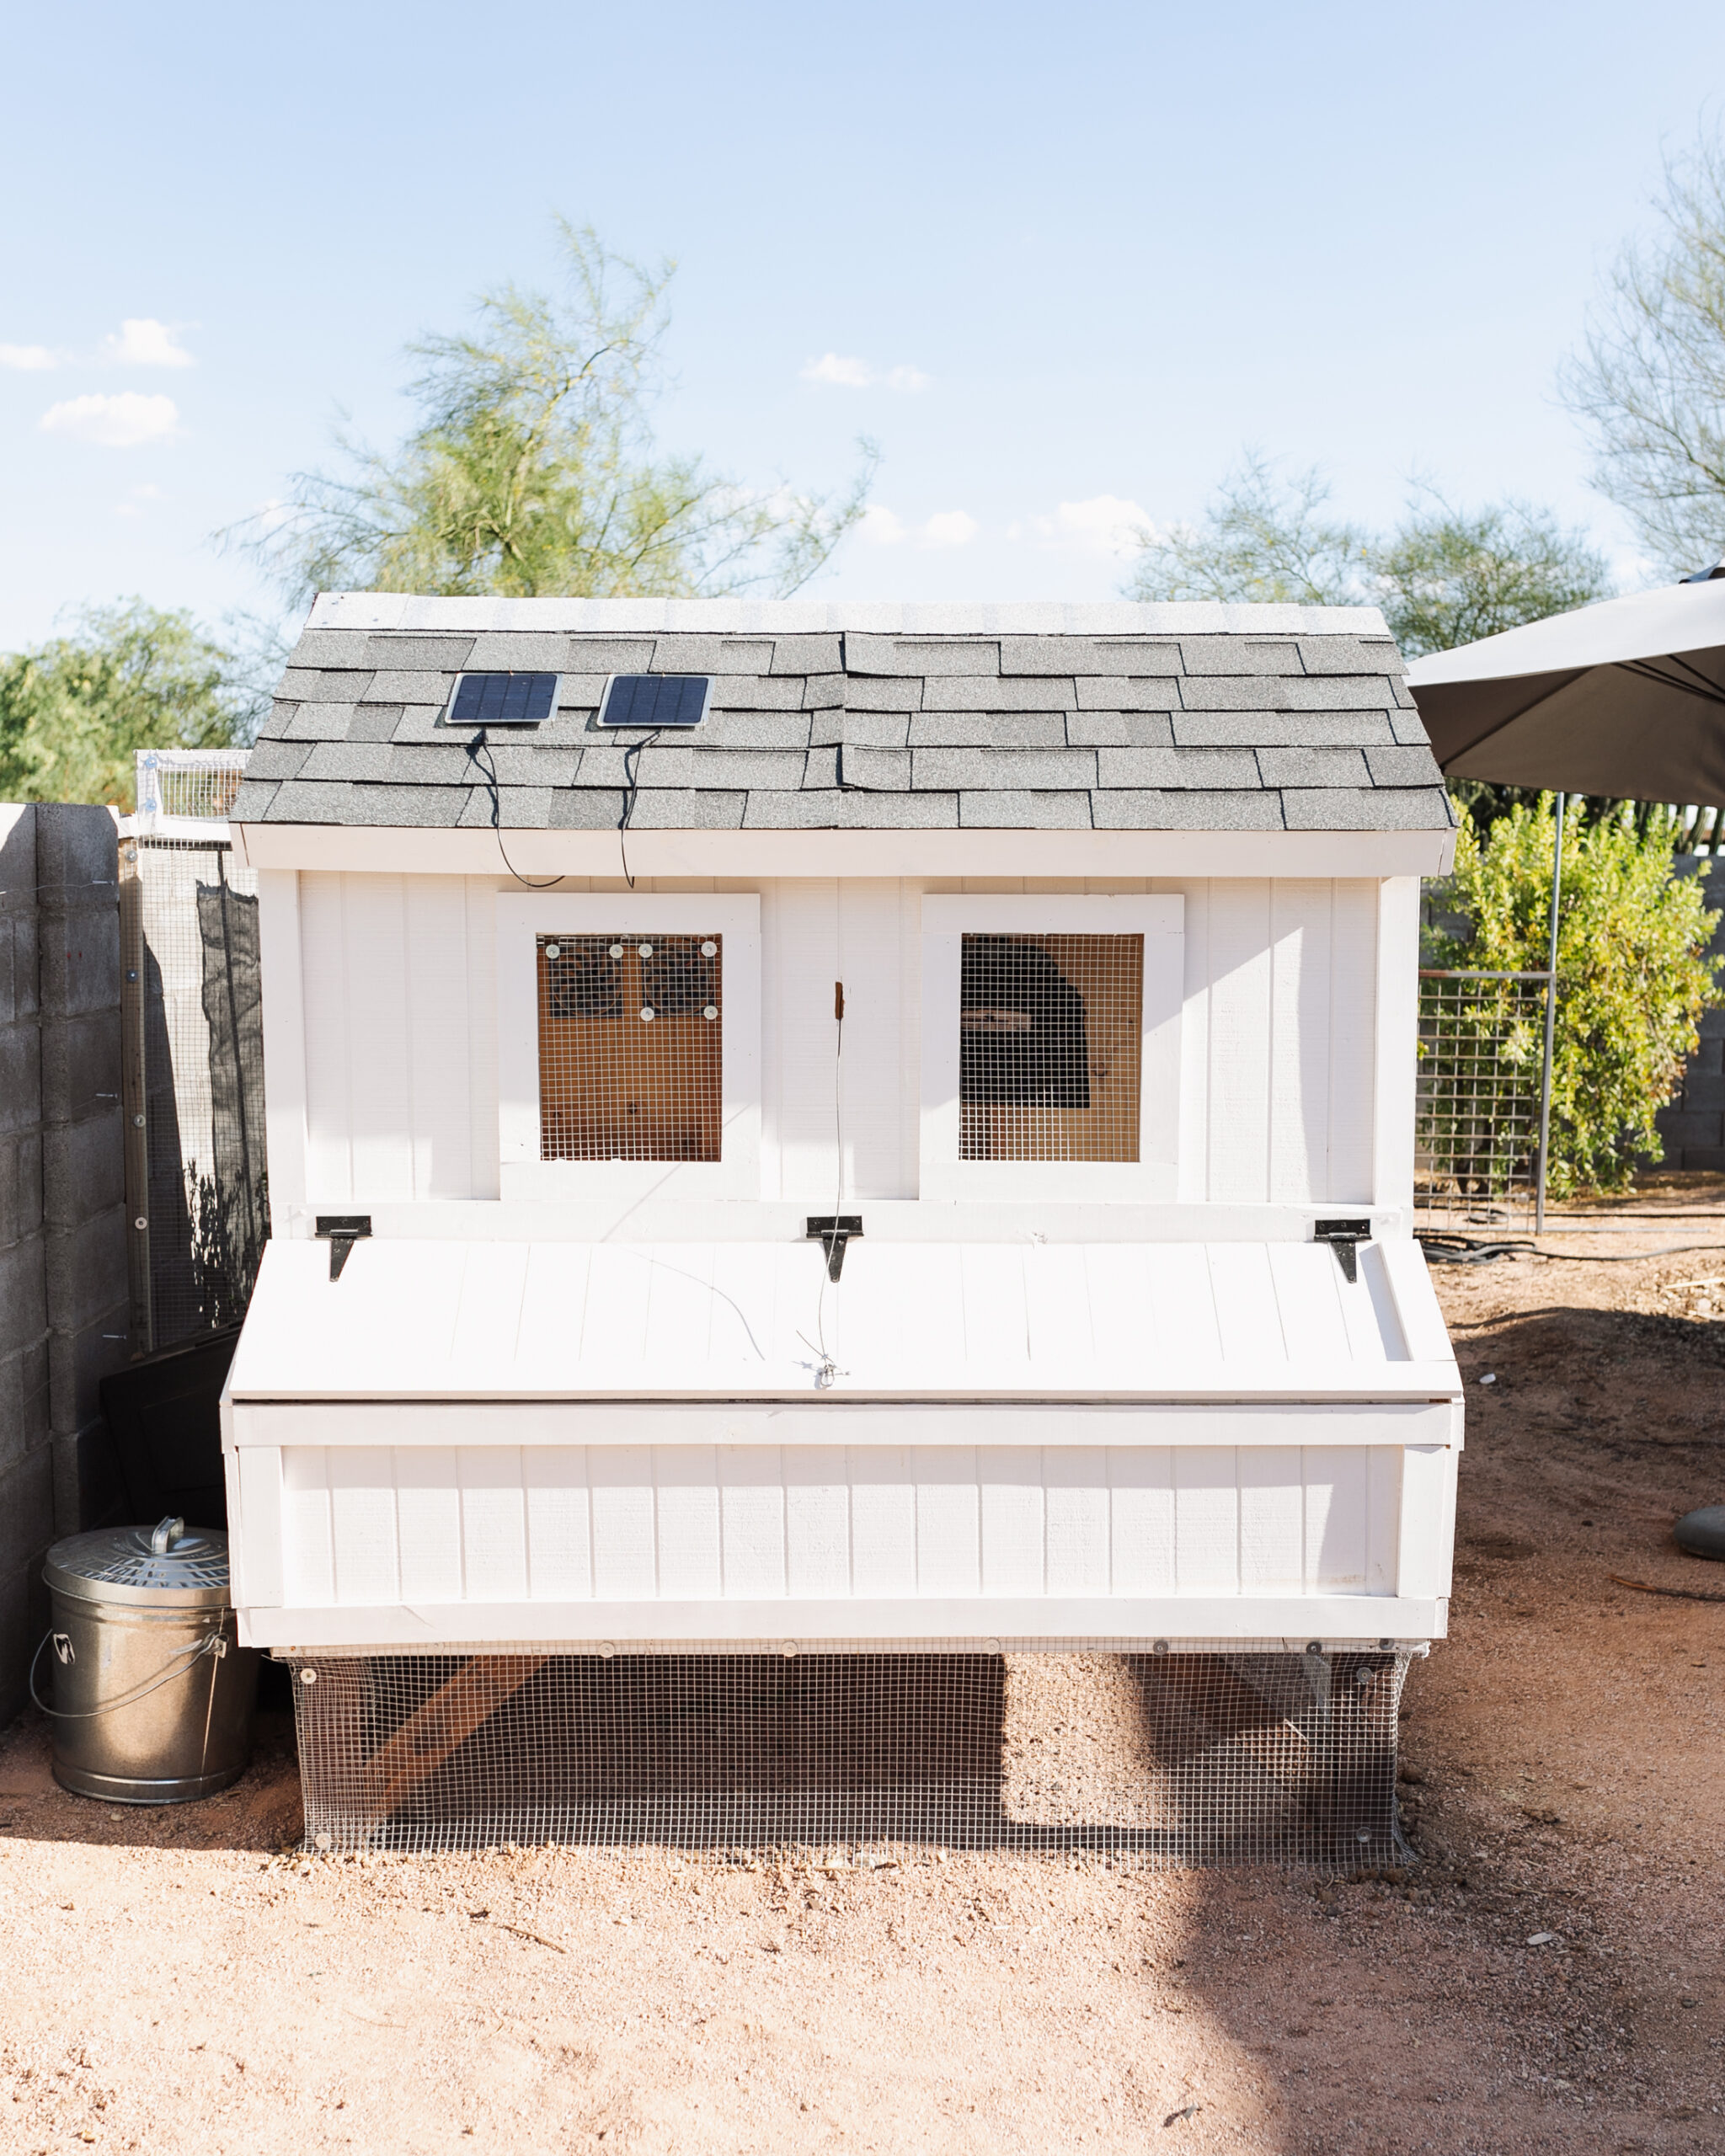 come take a tour of our finished desert chicken coop and run #theldlhome #chickencoop #DIYchickencoop #backyardchickencoop